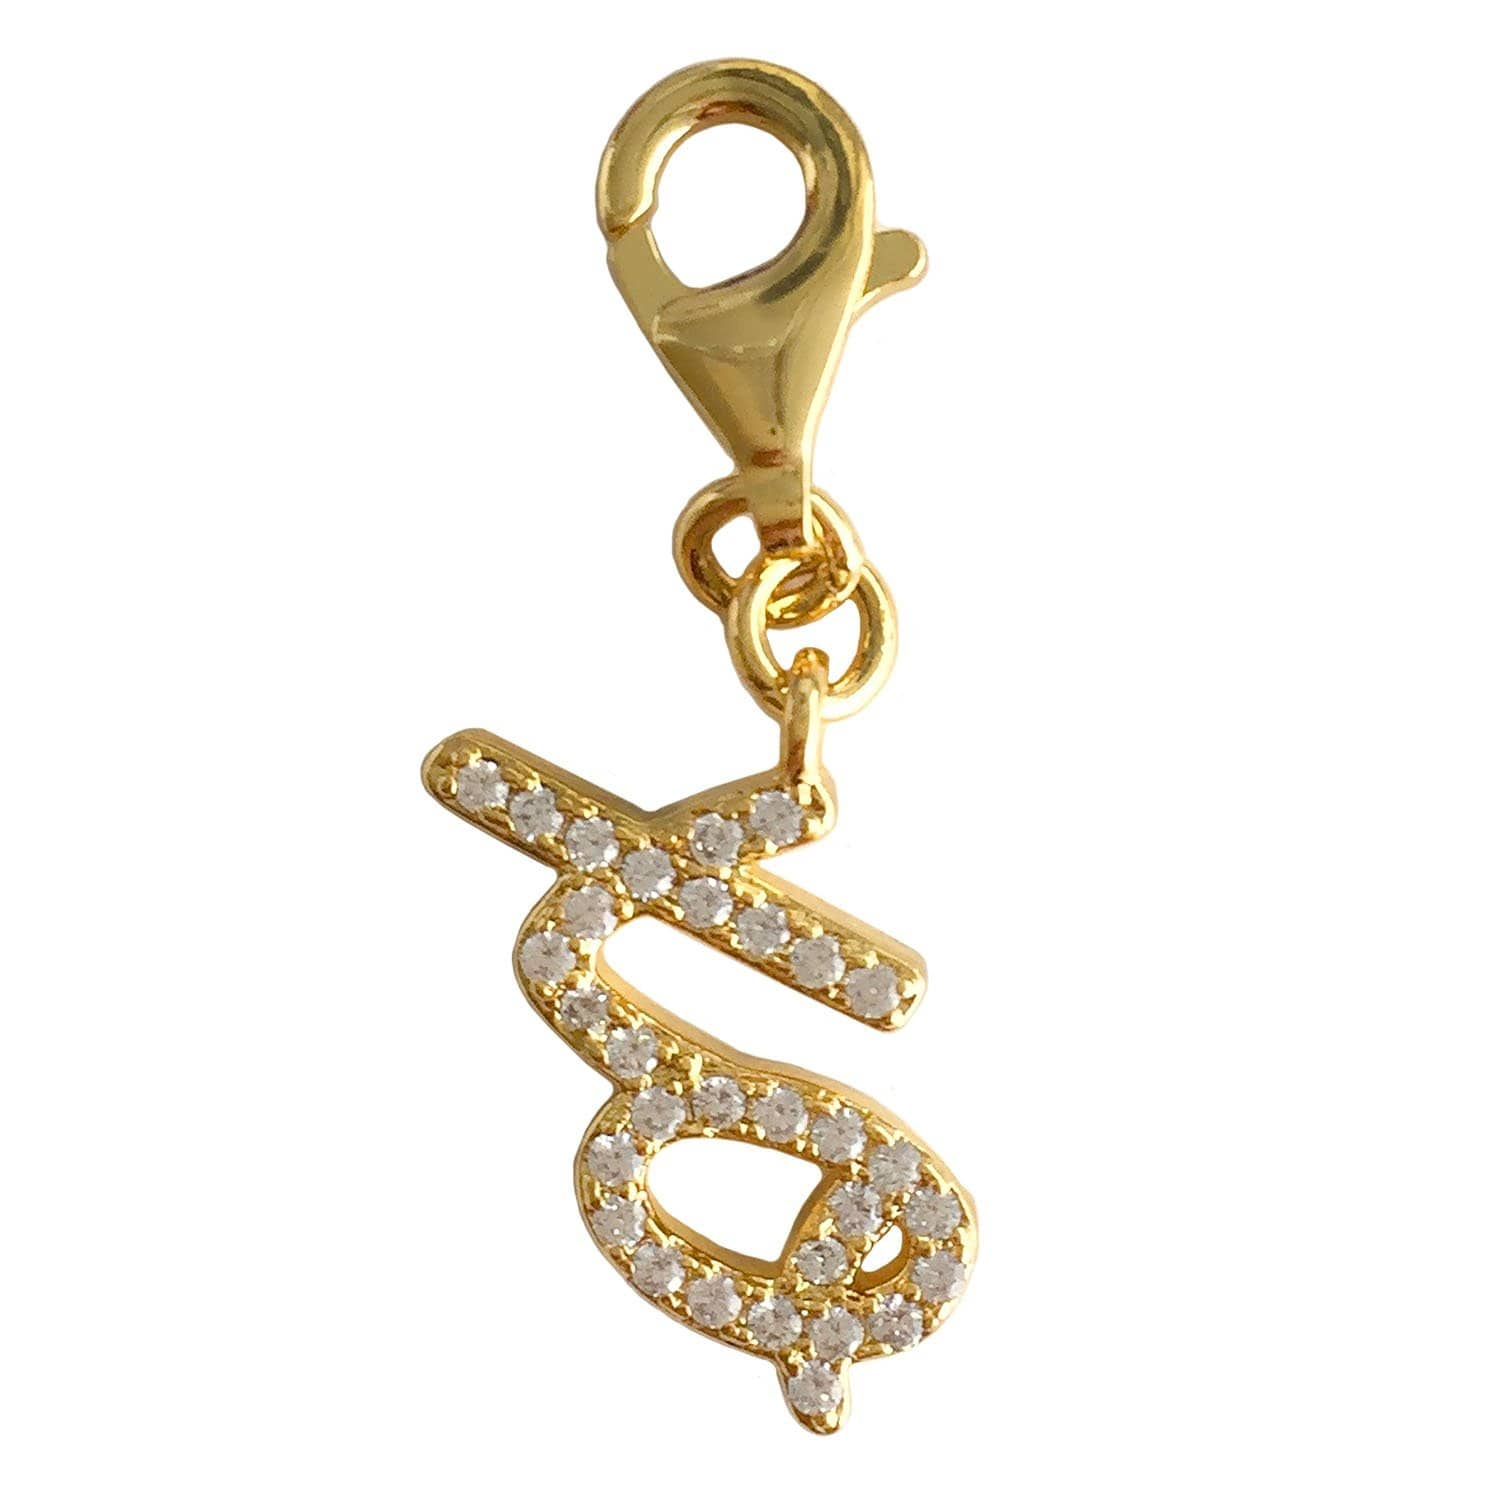 Julieta Jewelry XO Clip-On Charm - Thumbnail 0